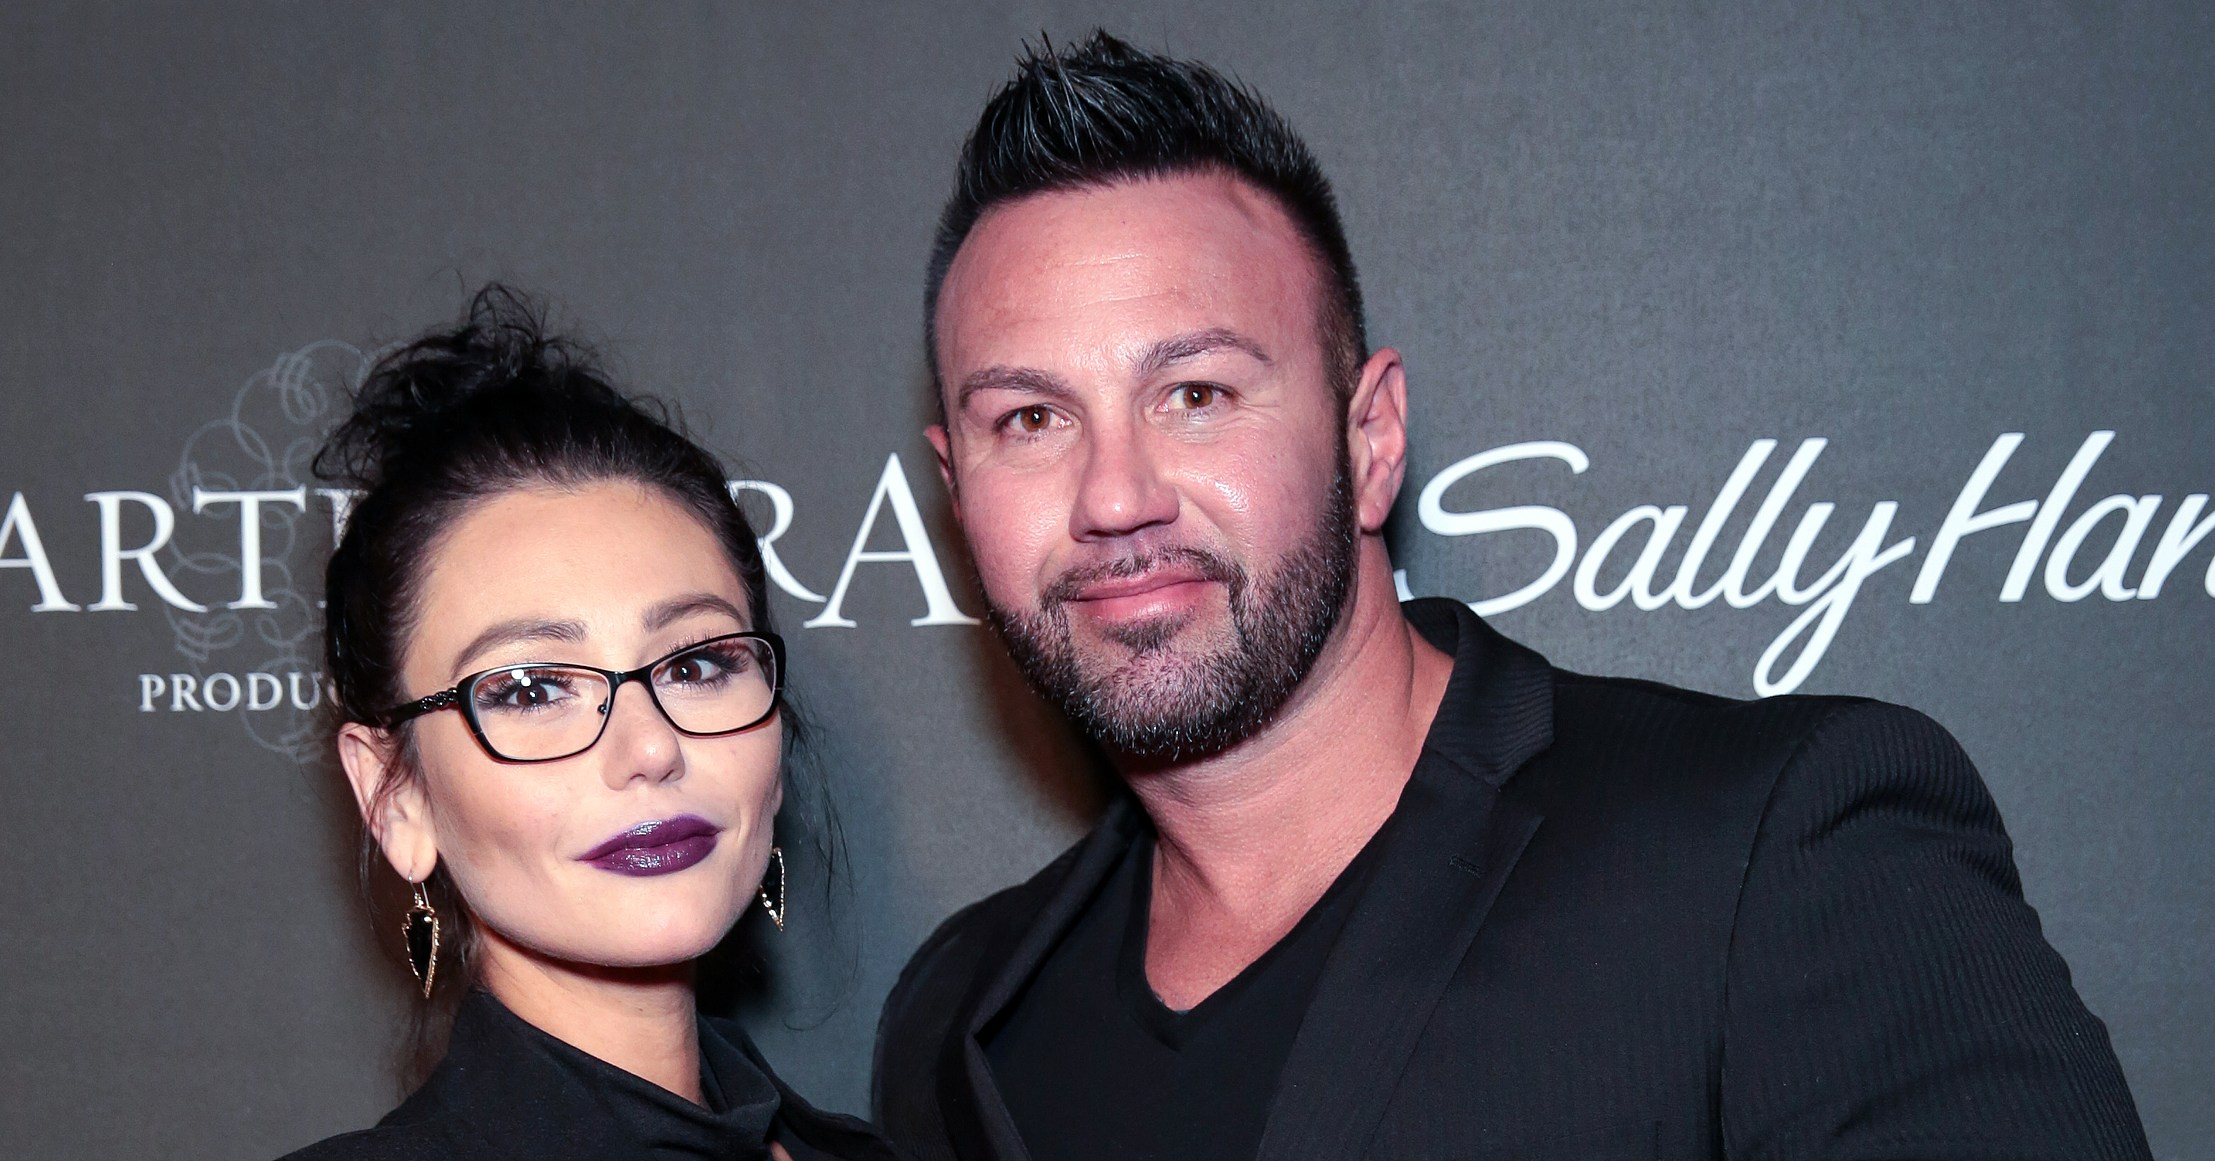 JWoww 'Would Never Take Her Kids' From Roger Mathews